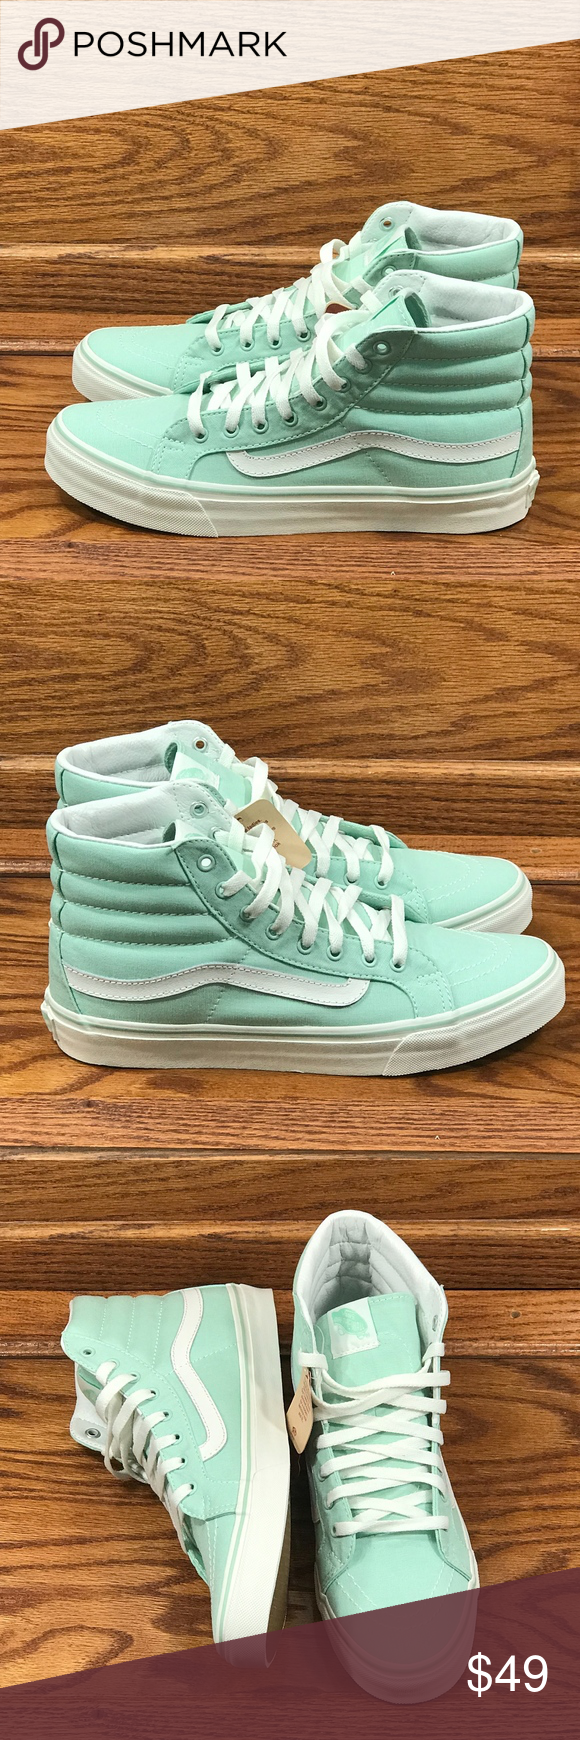 76b72fa736be8e Vans Sk8 Hi Slim Gossamer Green Blanc de Blanc Vans Sk8 Hi Slim Gossamer  Green Blanc de Blanc Skate Shoes Brand new in box Vans Shoes Athletic Shoes